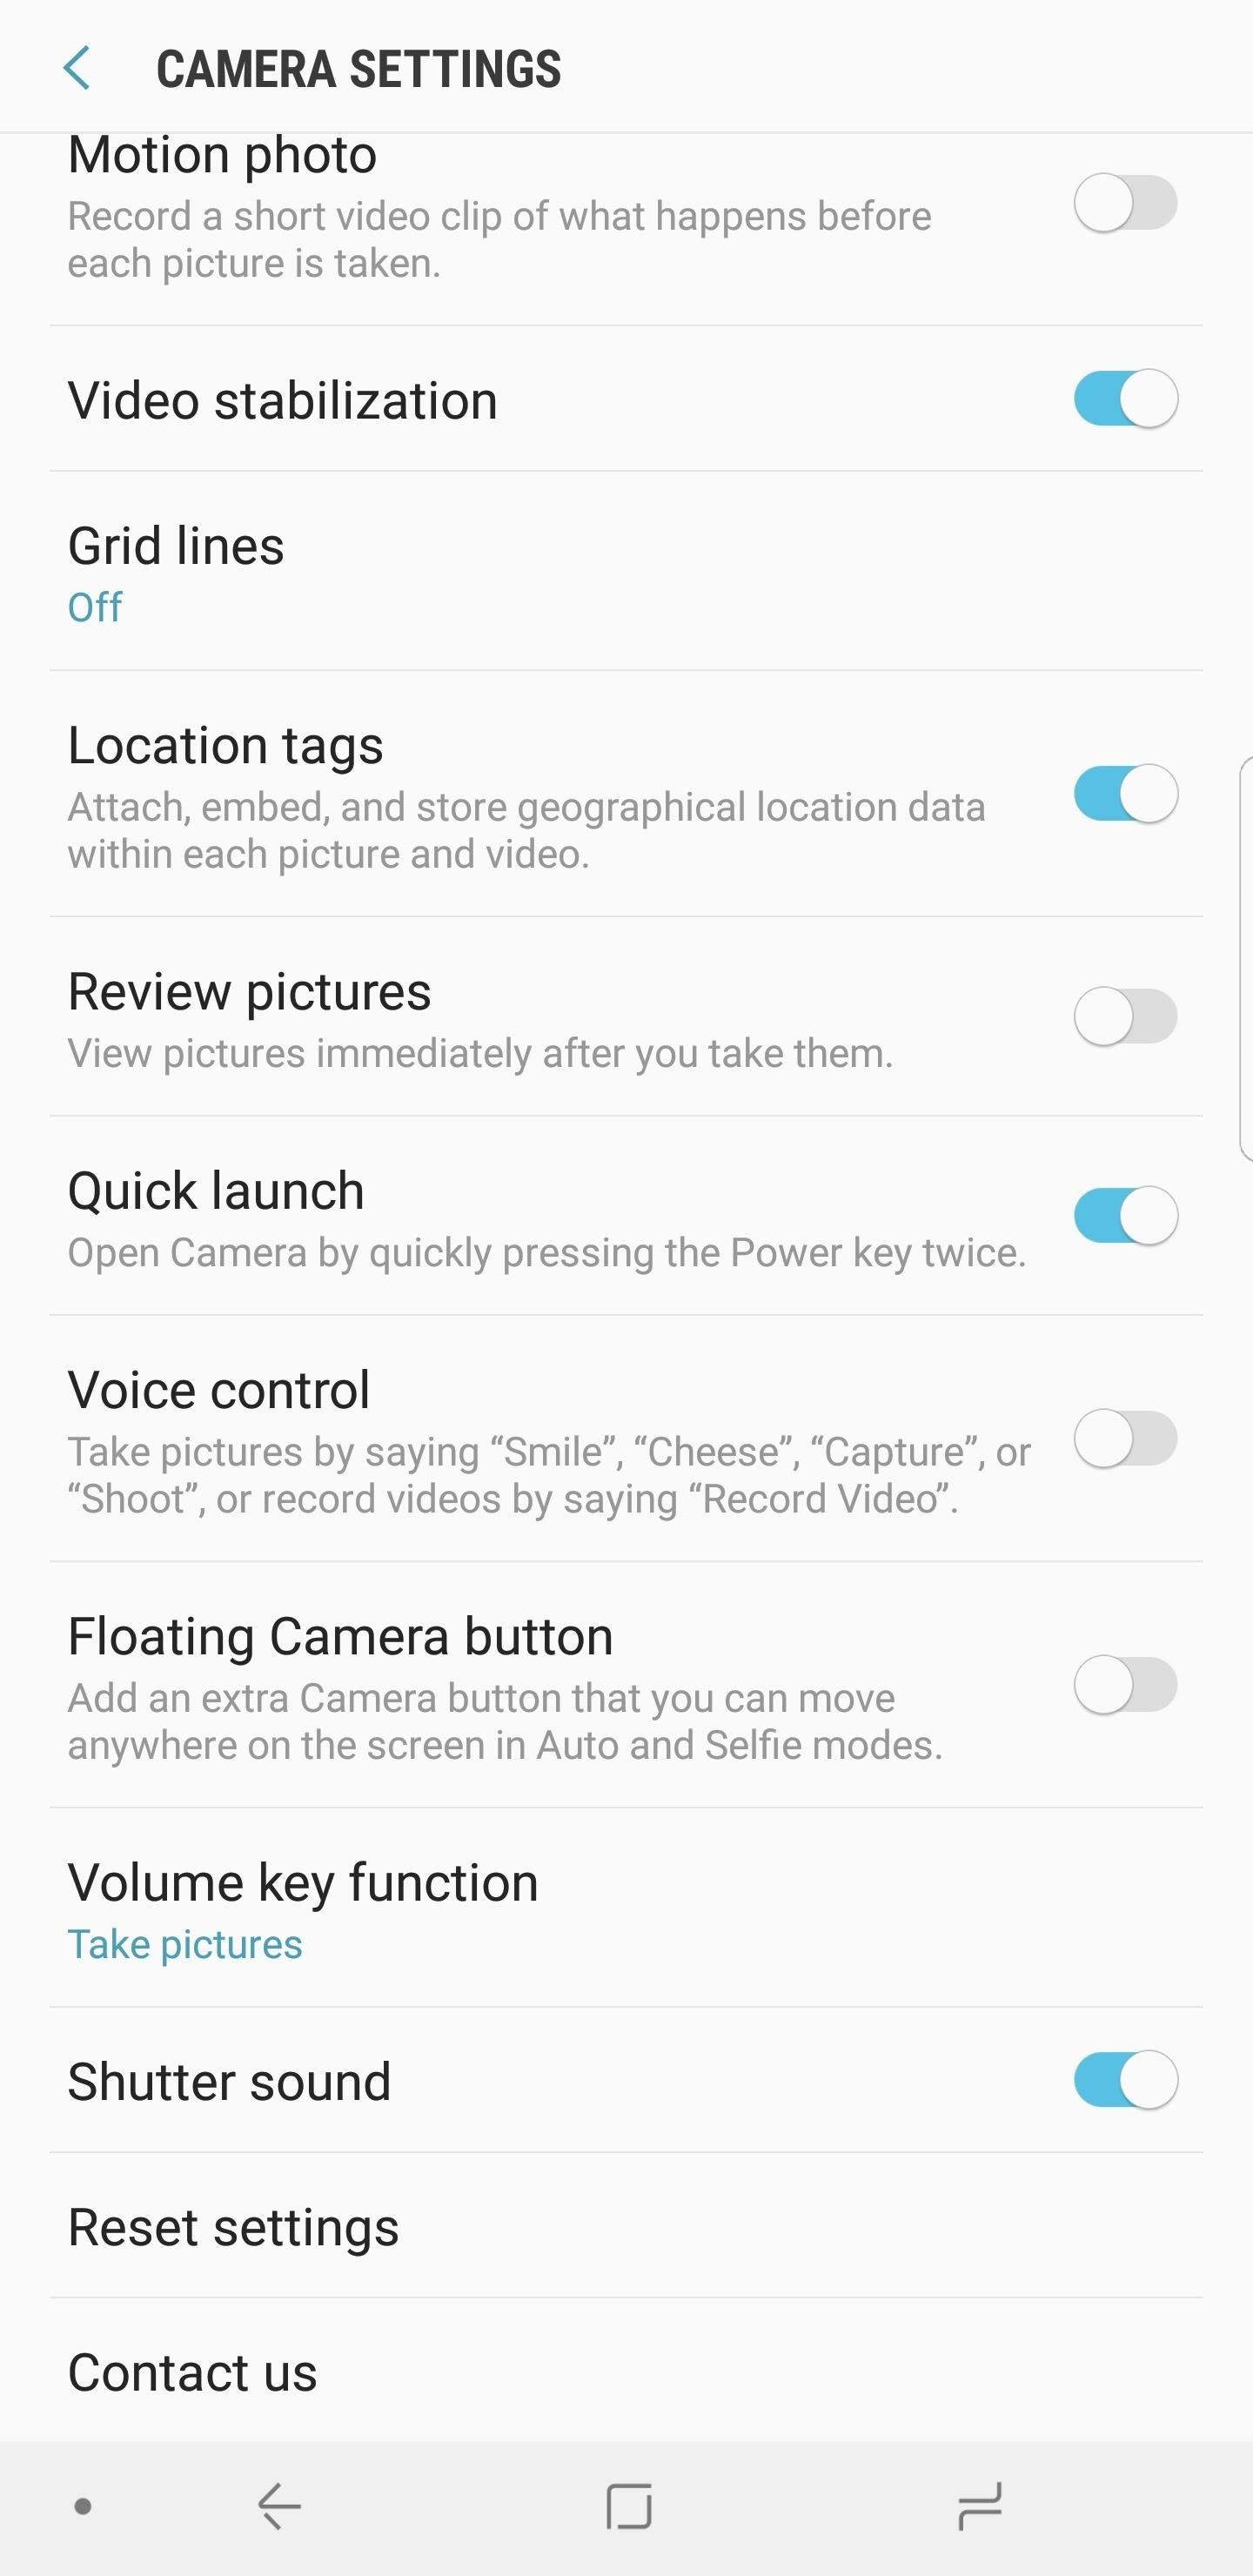 Galaxy S8 Oreo Update: Camera App Gets Note 8 UI & Full View Mode